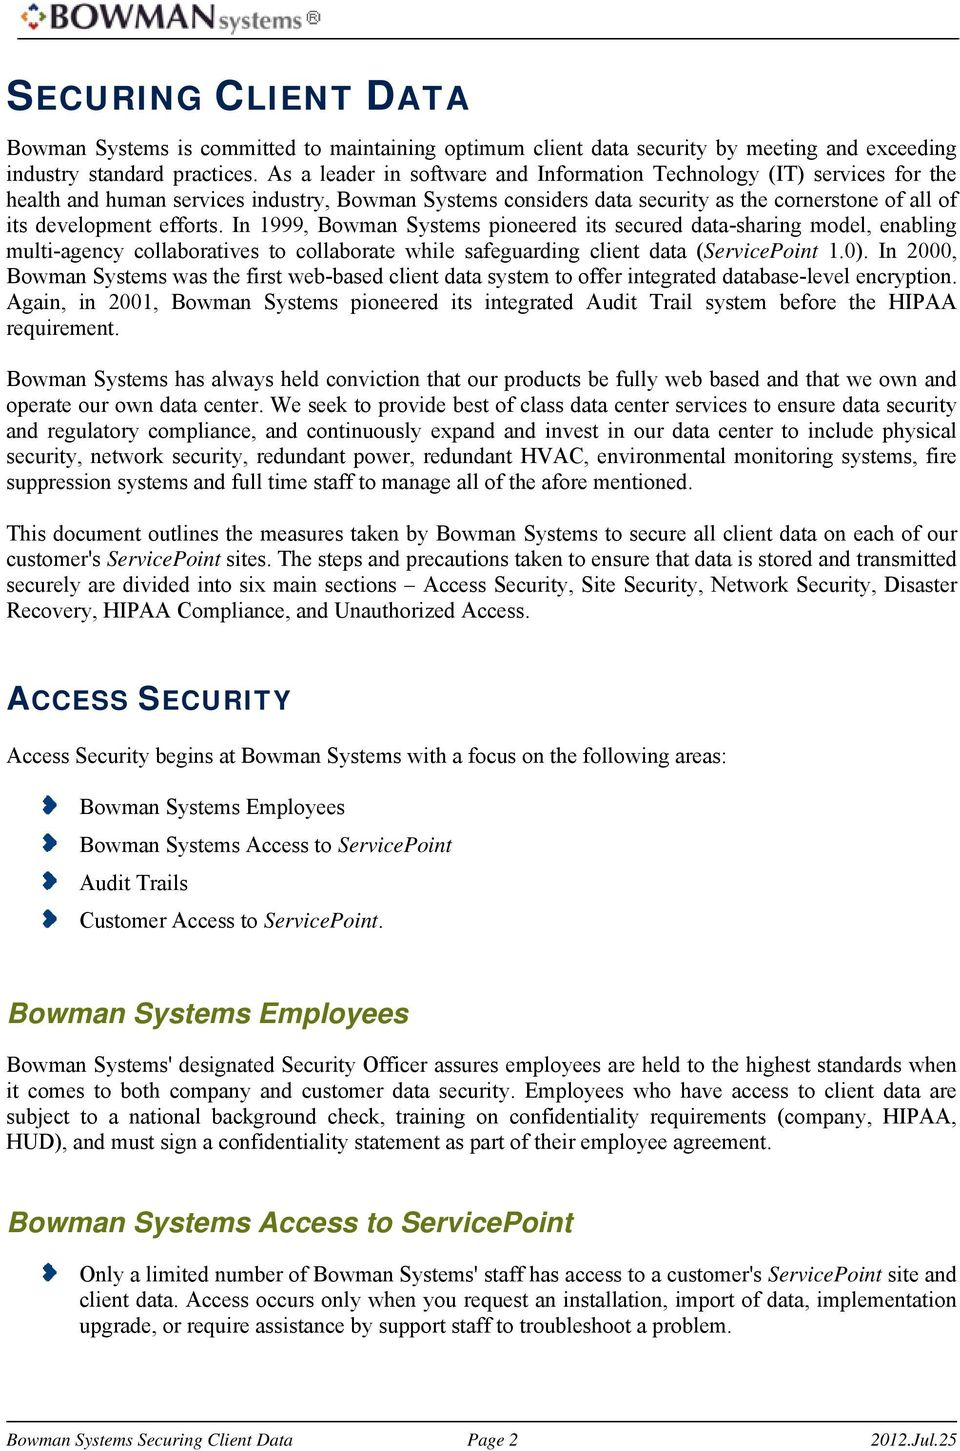 efforts. In 1999, Bowman Systems pioneered its secured data-sharing model, enabling multi-agency collaboratives to collaborate while safeguarding client data (ServicePoint 1.0).